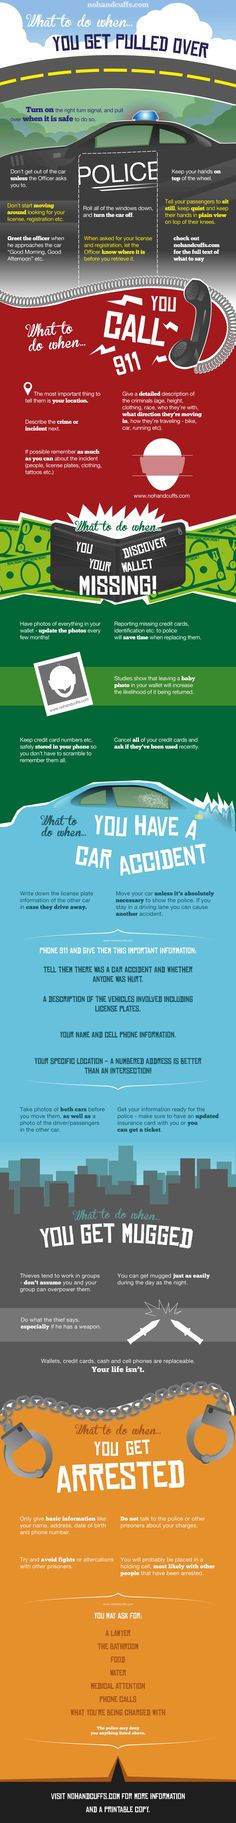 Put This Infographic in Your Wallet to Know What to Do When Bad Things Happen.